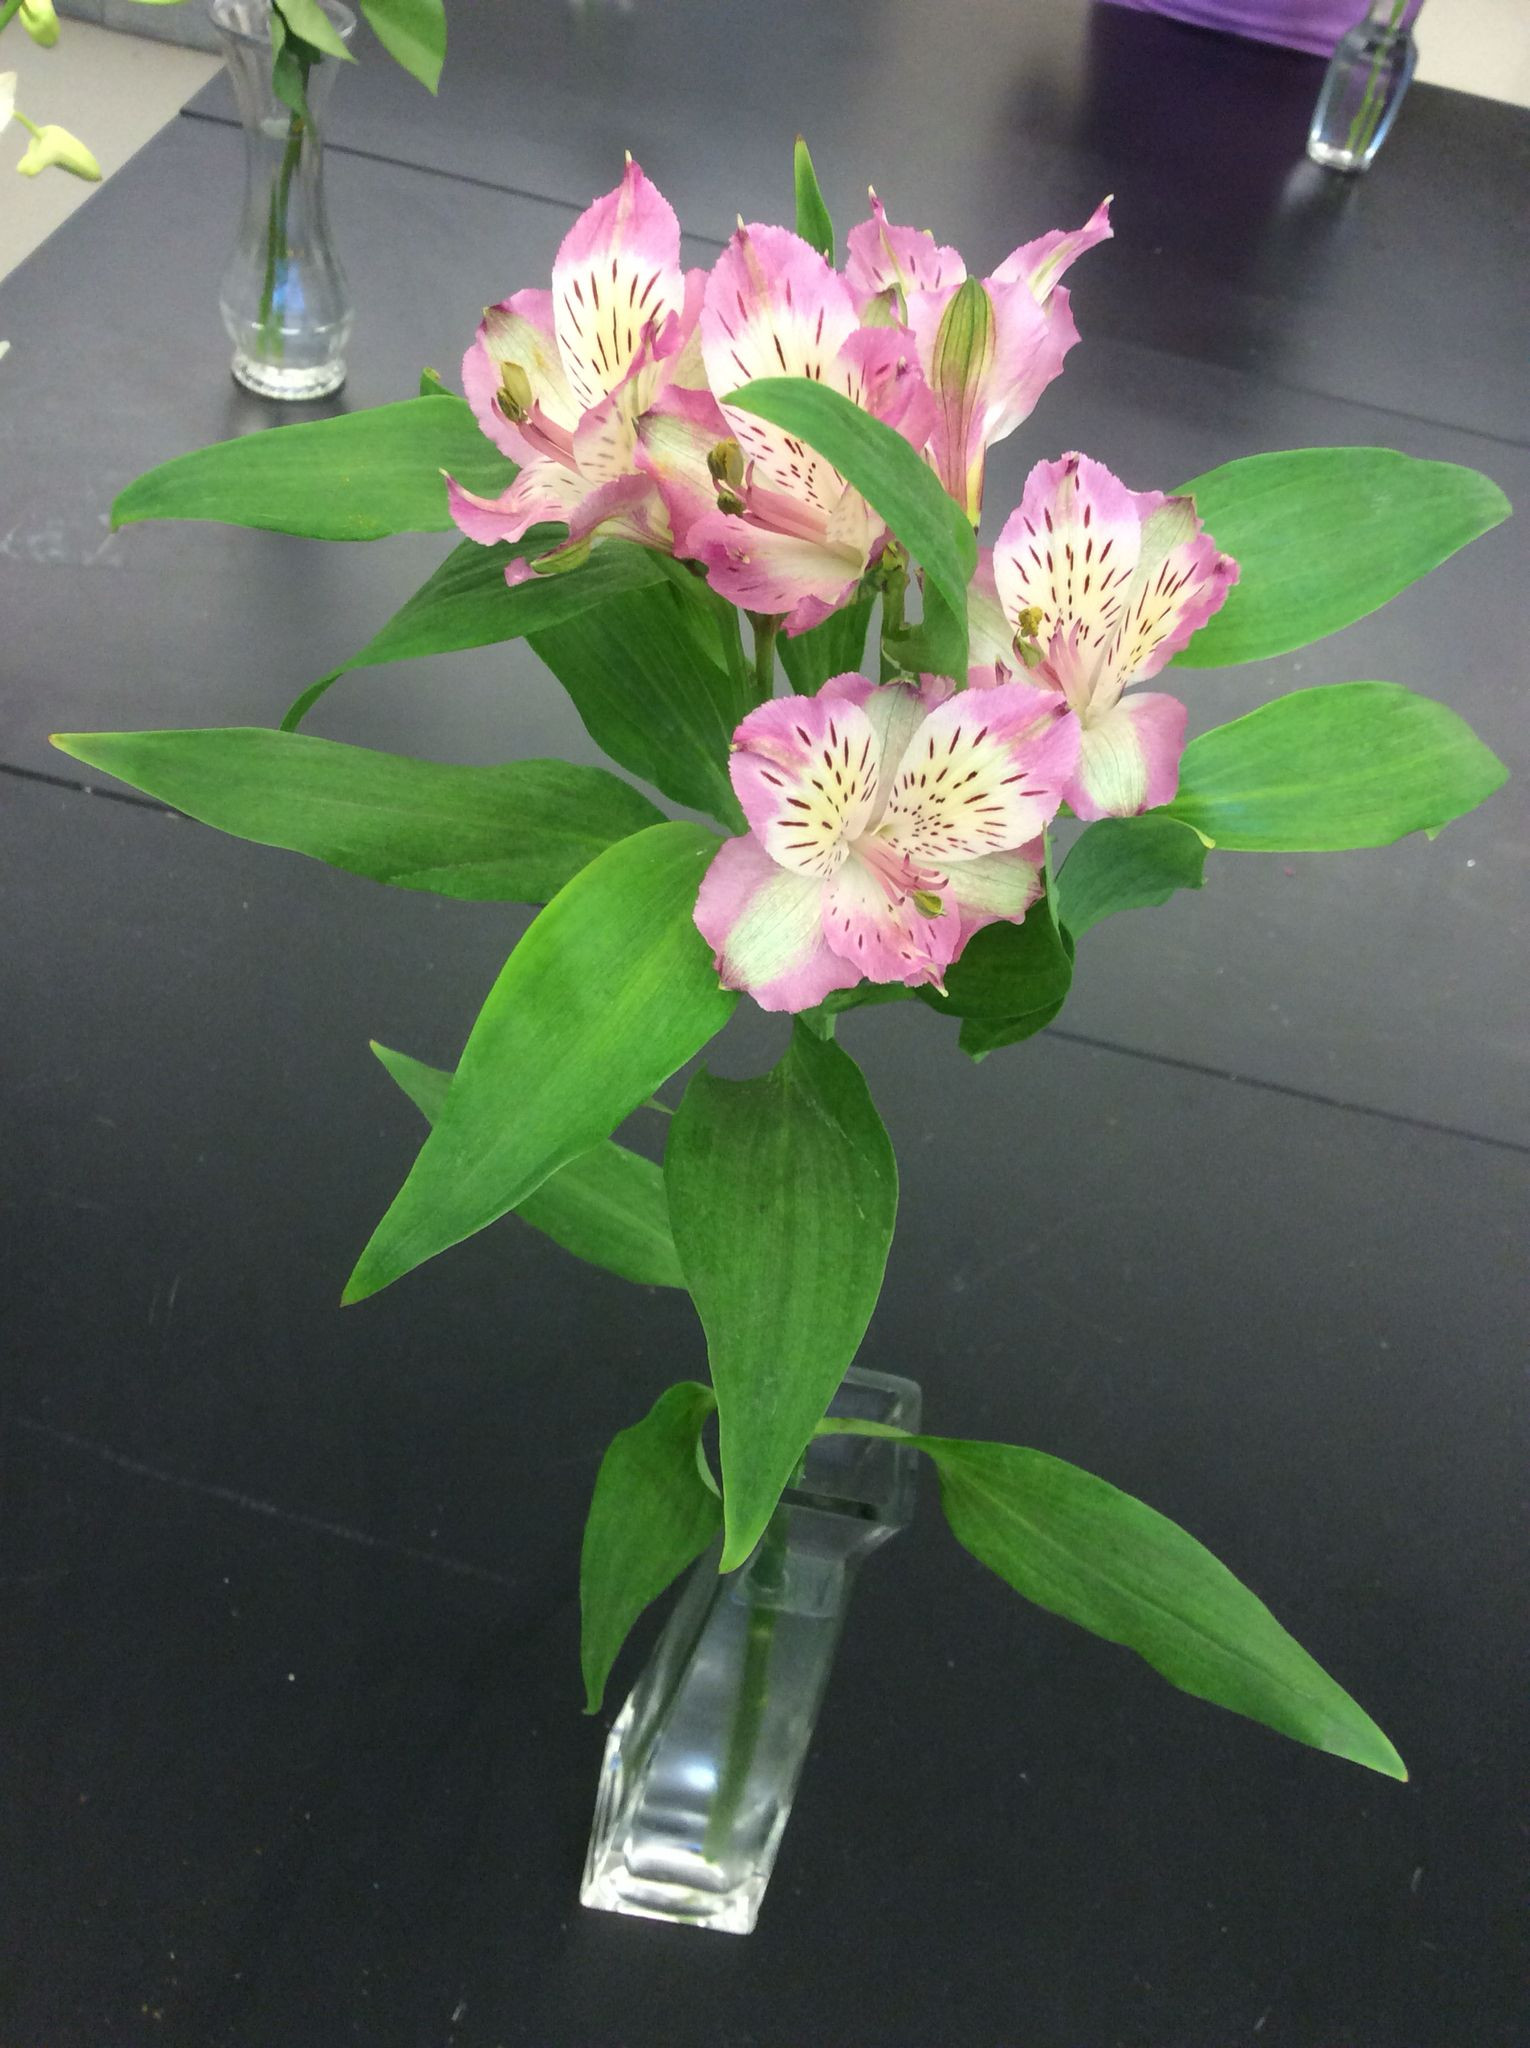 mon name alstroemeria Peruvian lily Inca lily lily of the incas Scientific name alstroemeria Availability year round Description umbel like clusters